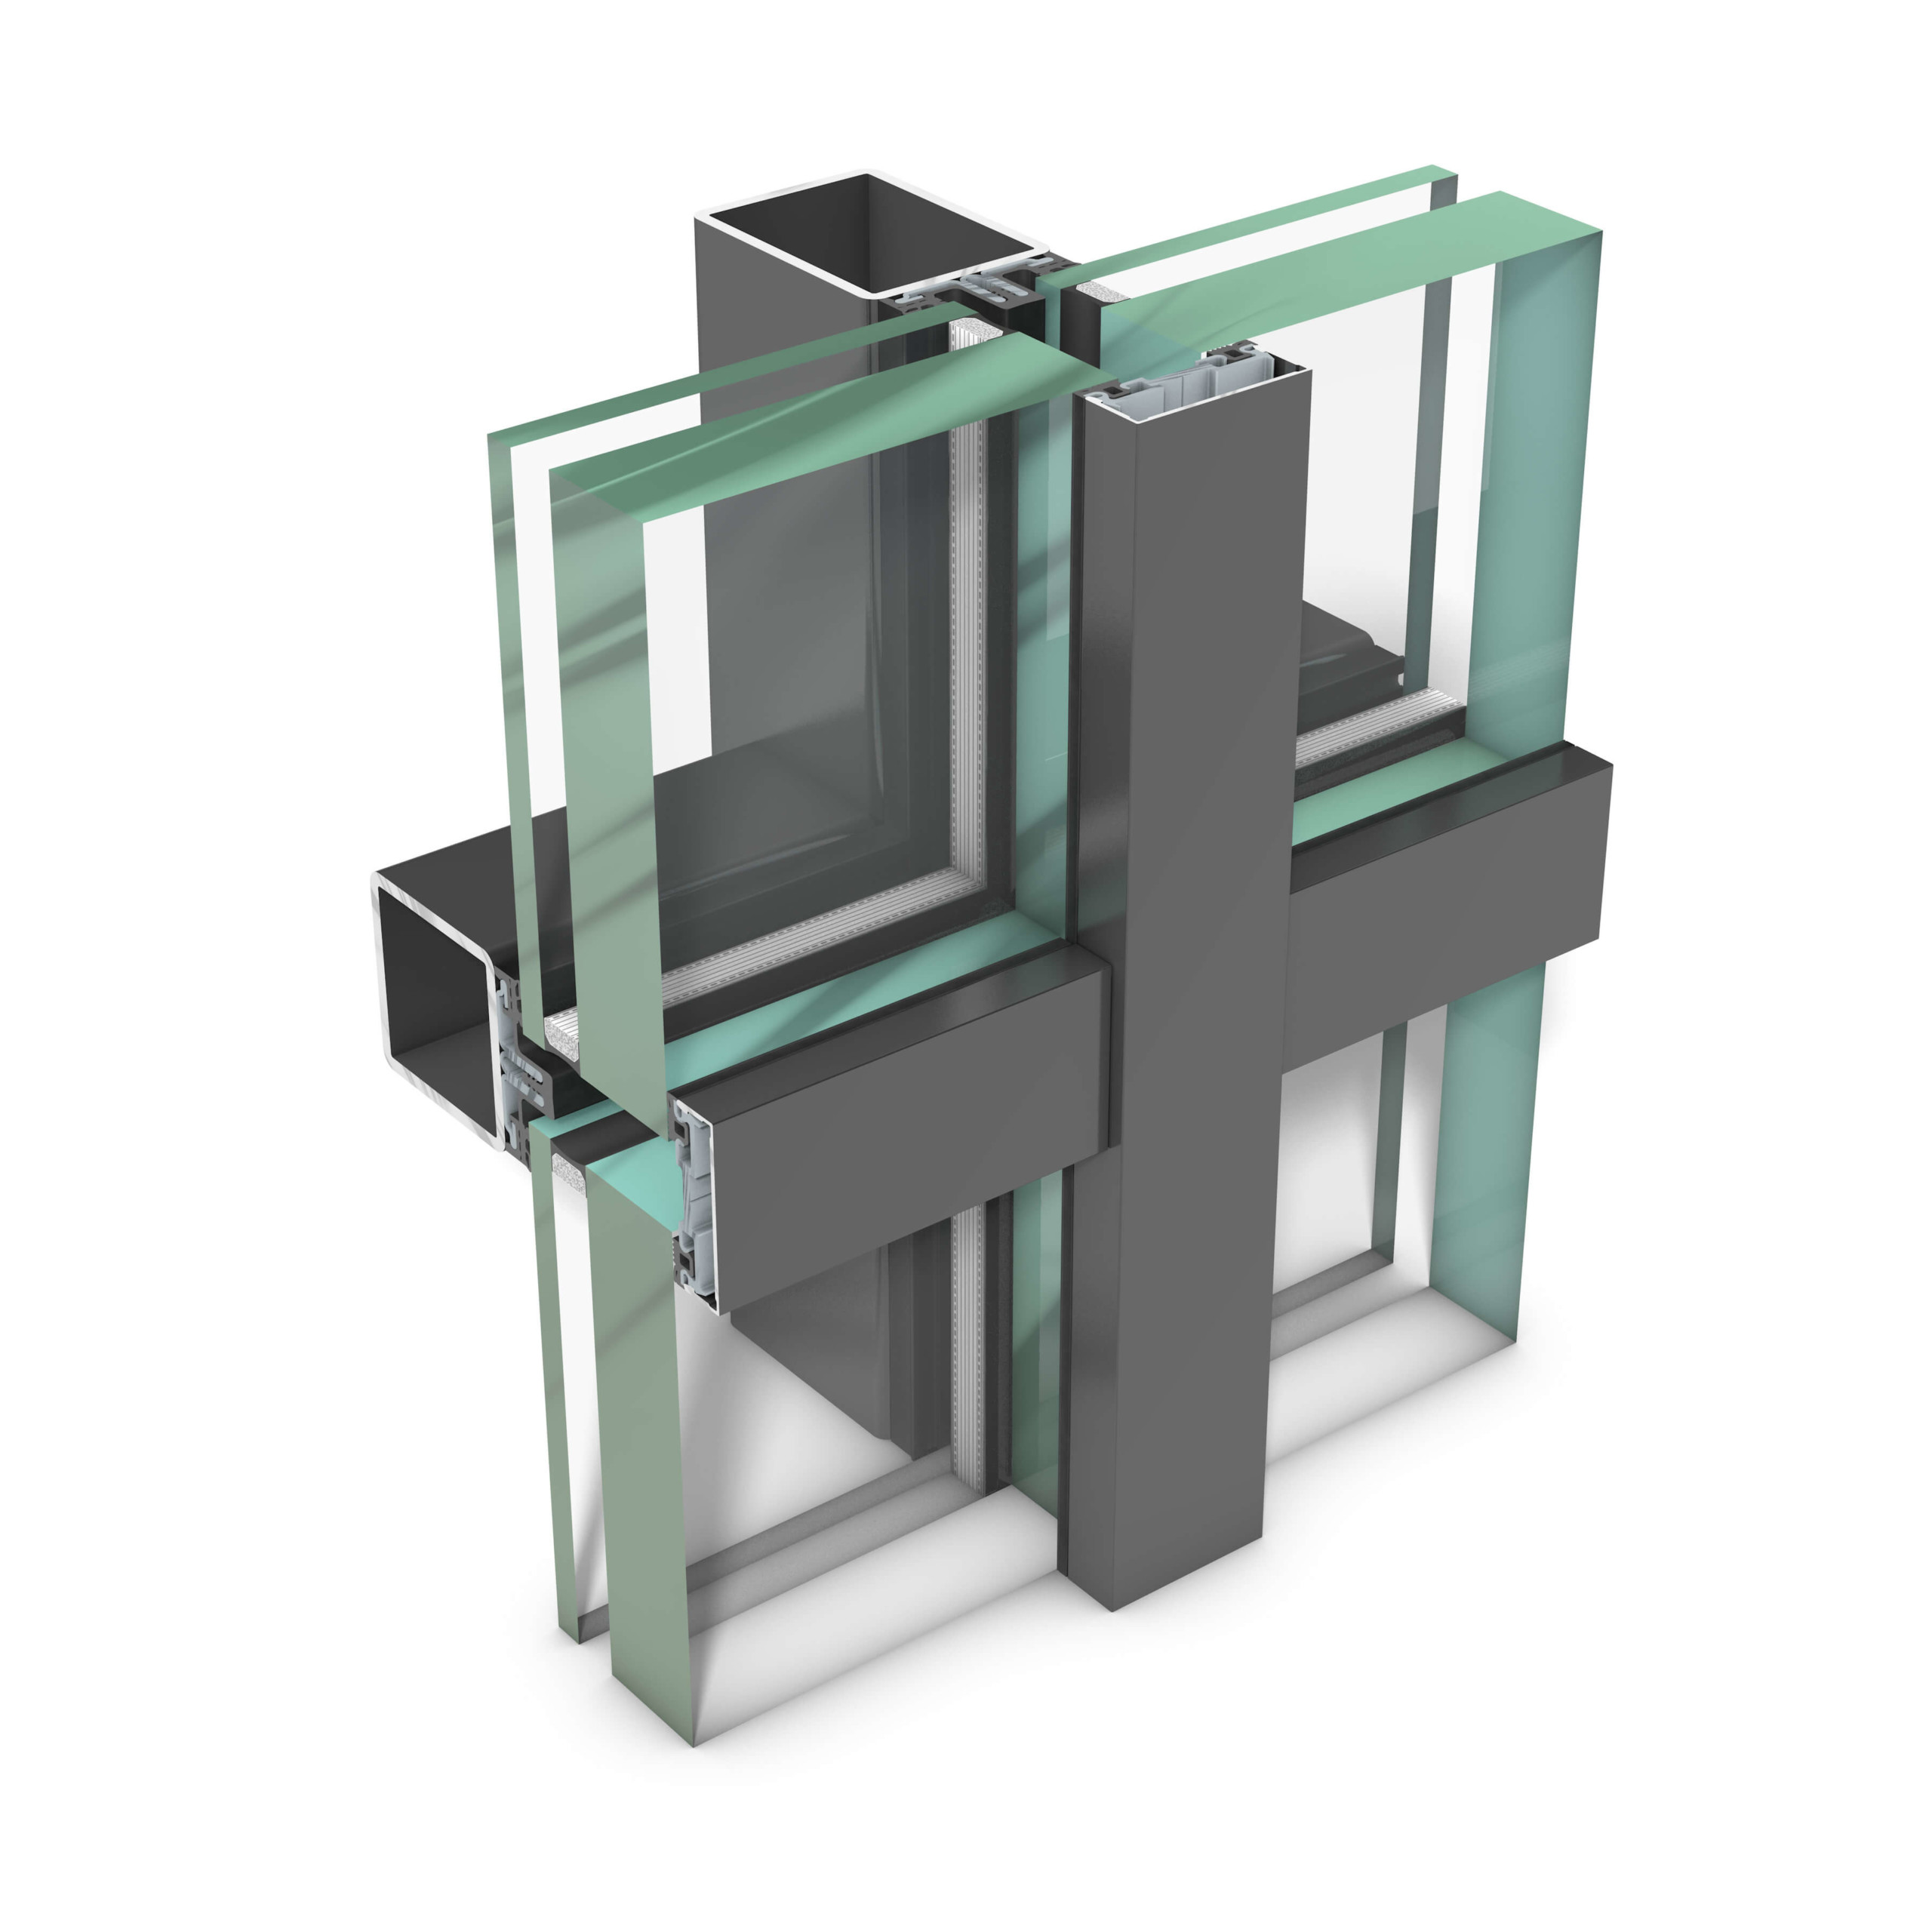 rp tec 55-1BR, steel add-on curtain wall for high safety requirements